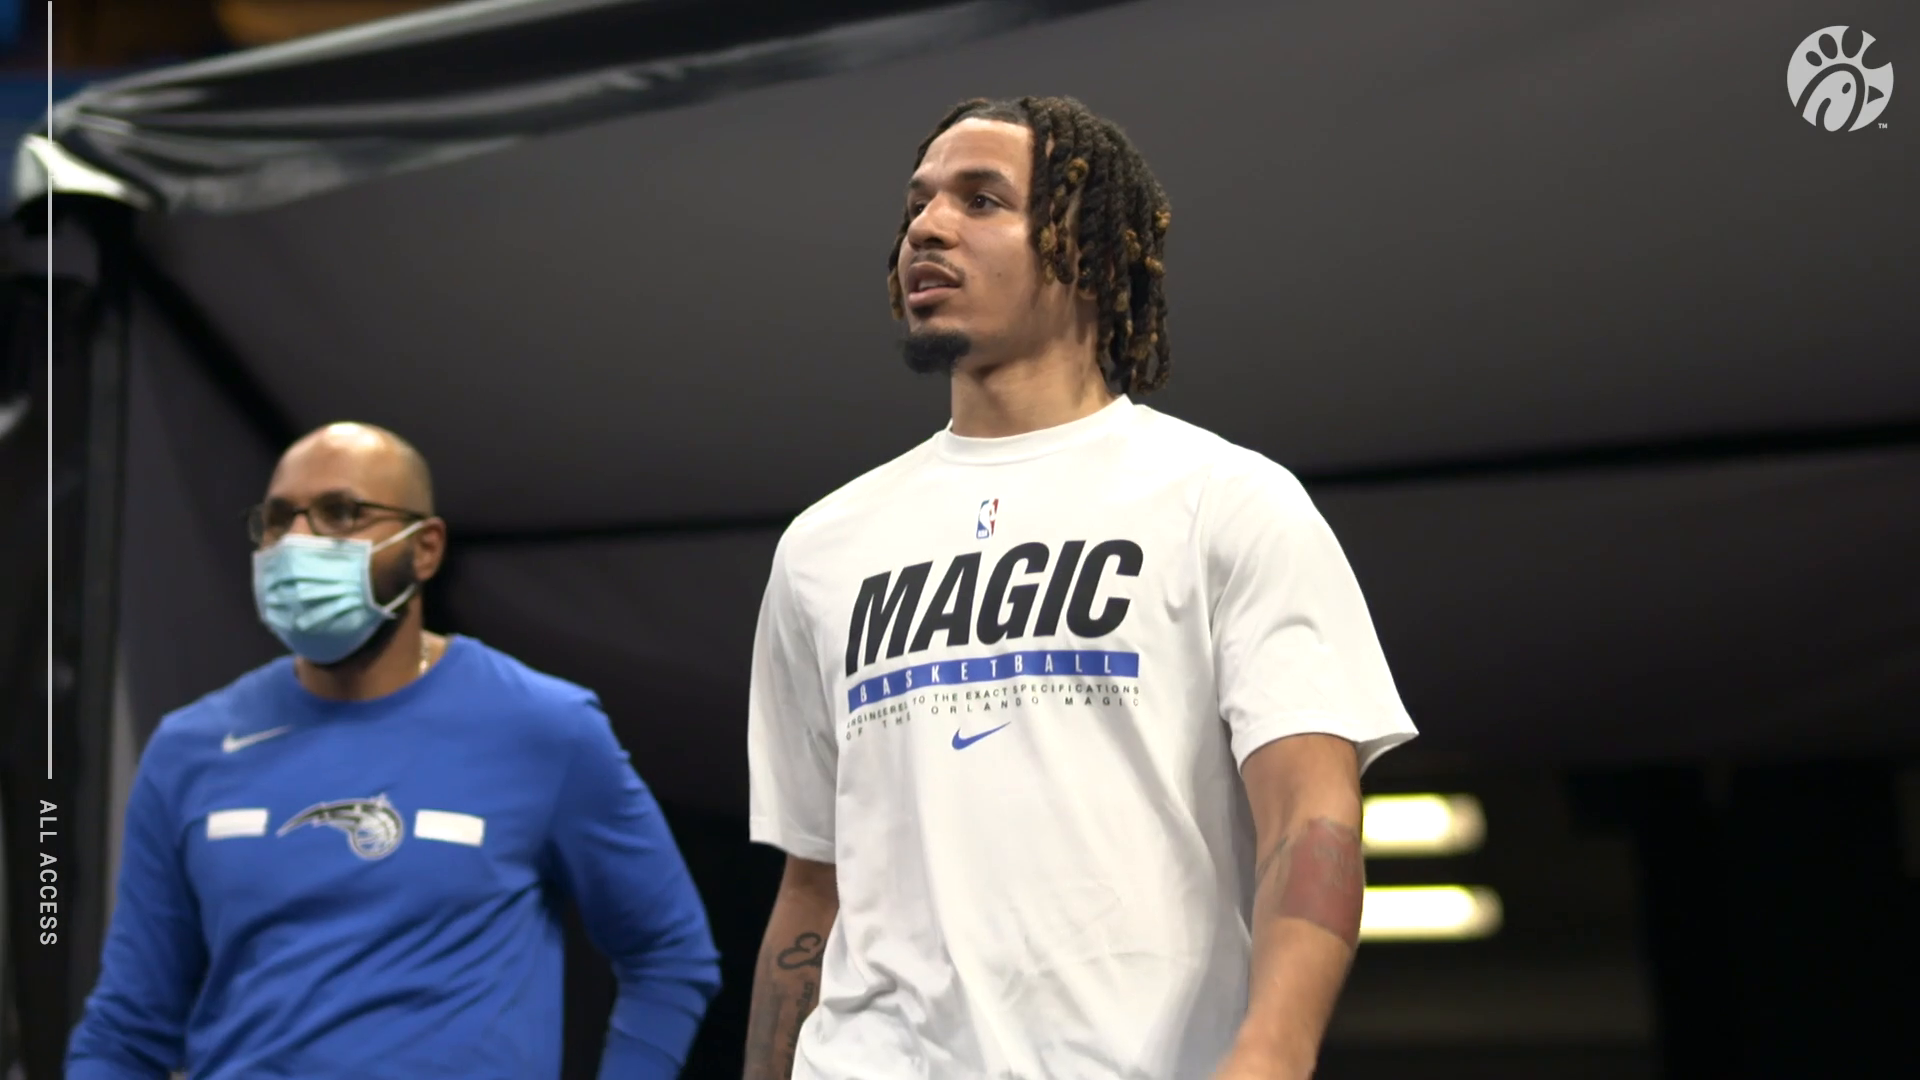 Orlando Magic All Access: Episode 4 | Presented by Chick-fil-A